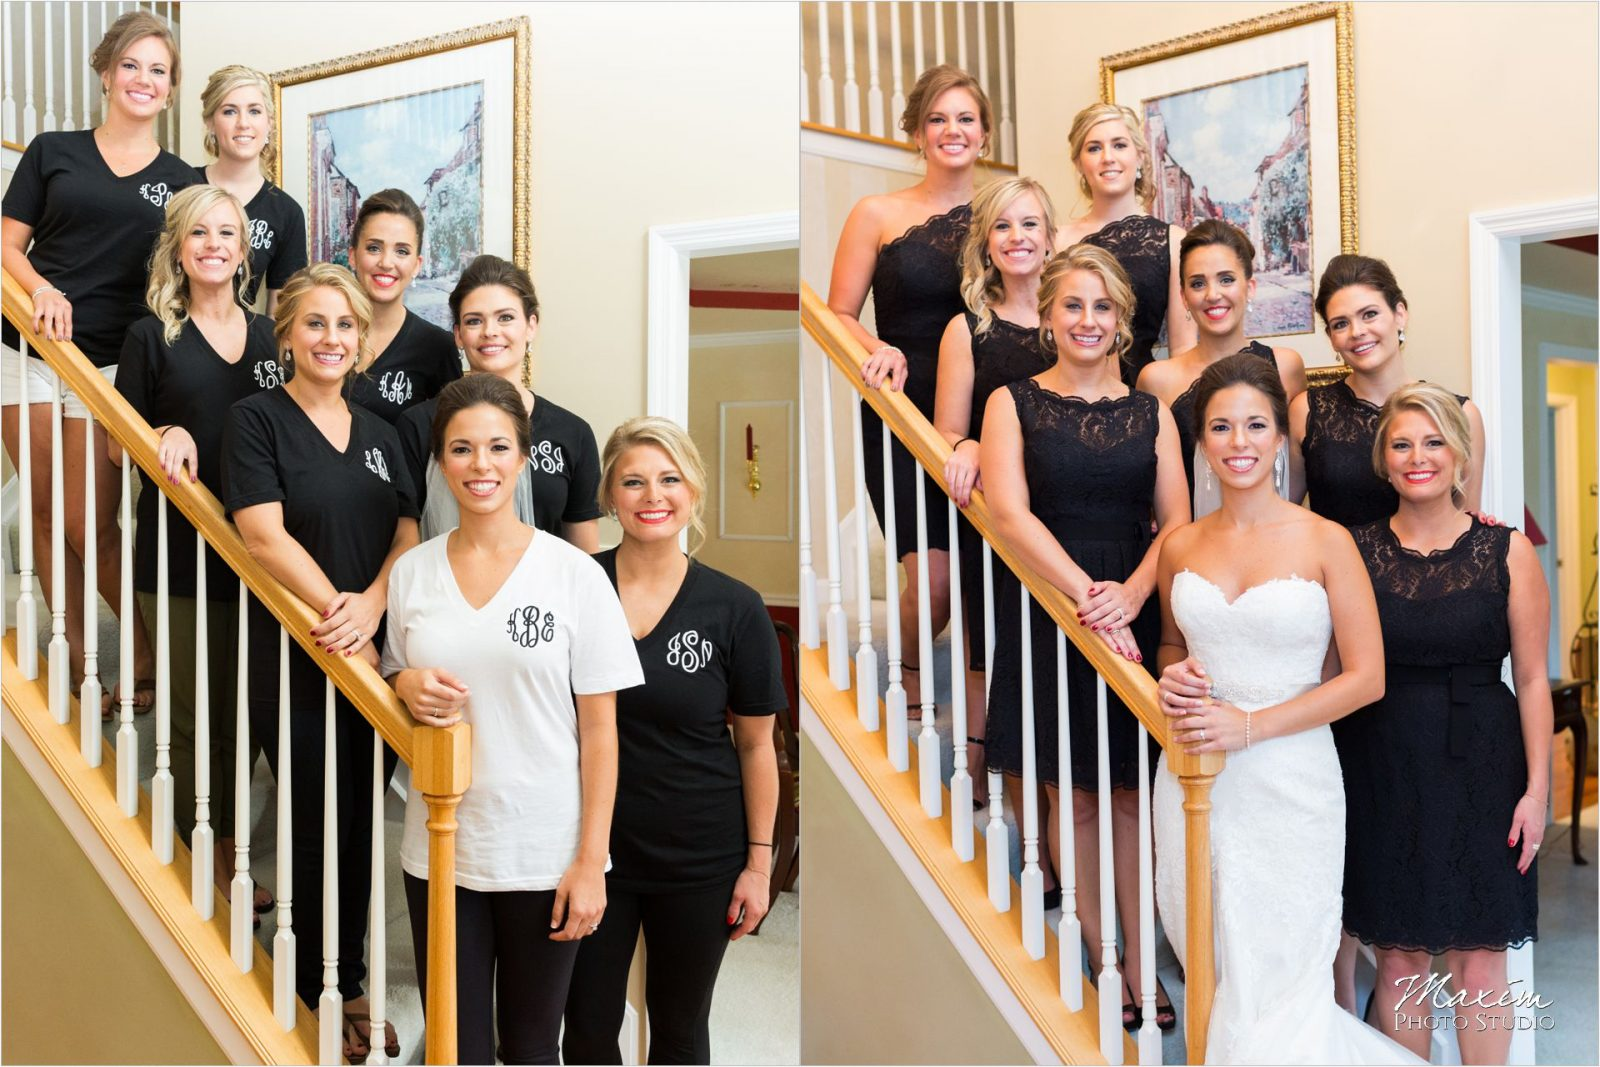 The Phoenix Cincinnati Wedding Photography Bride before After